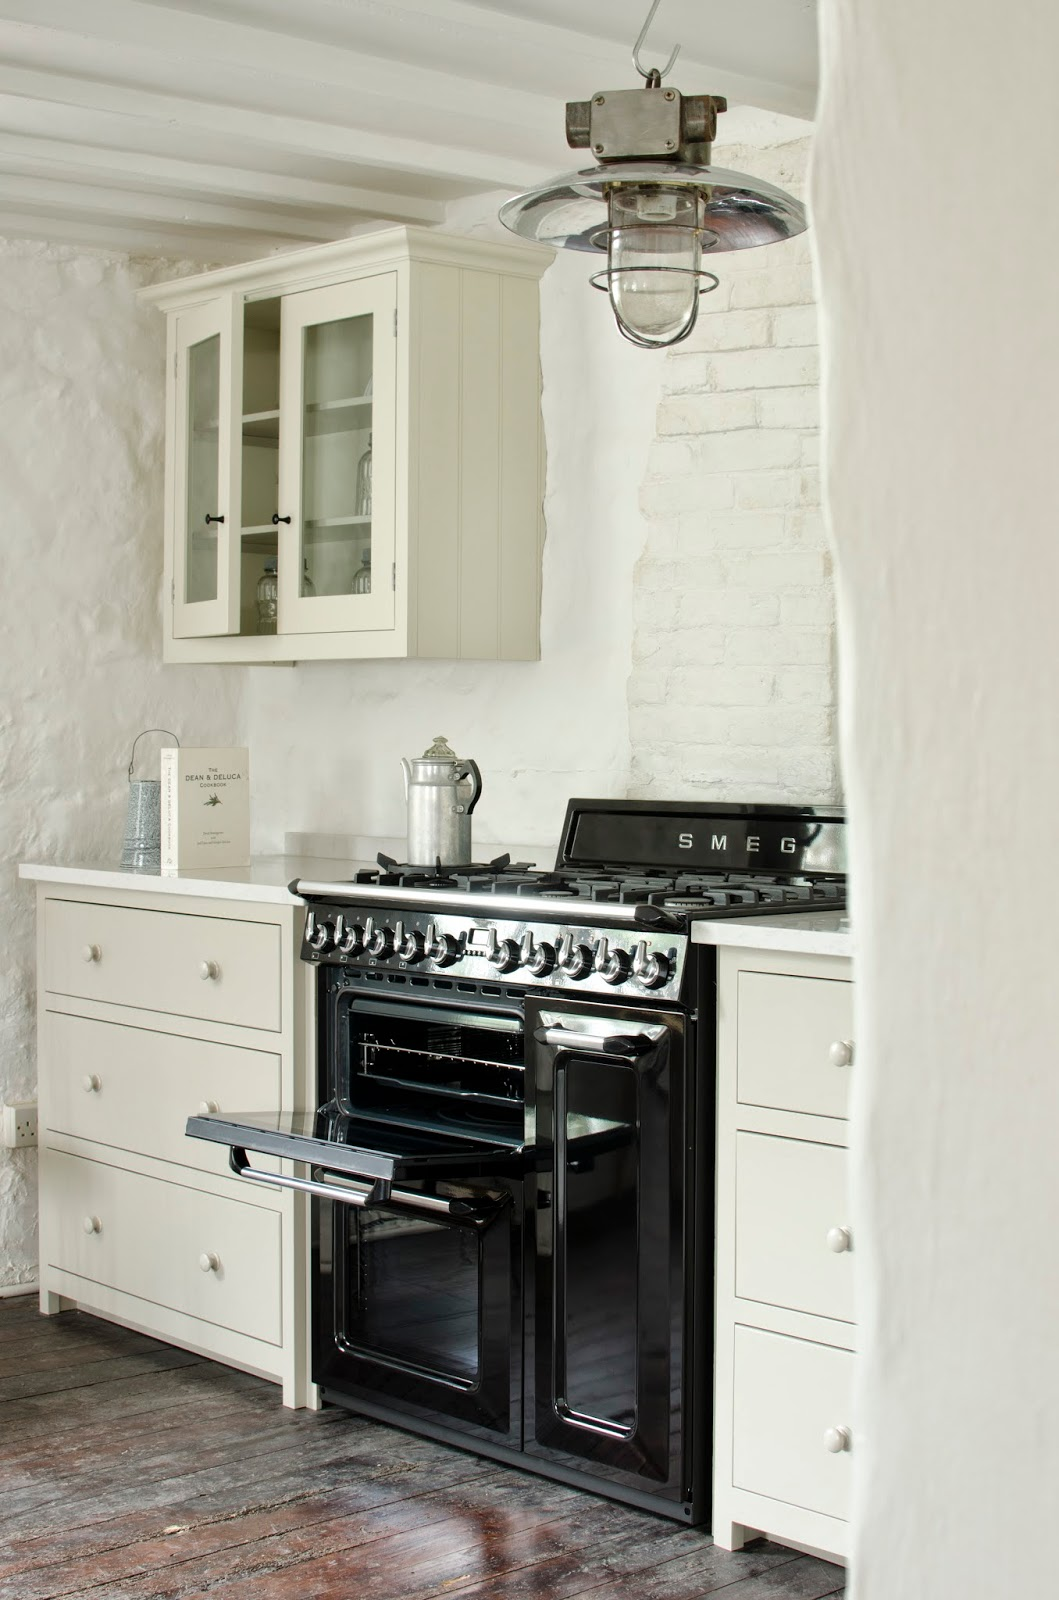 Country Kitchen Oven